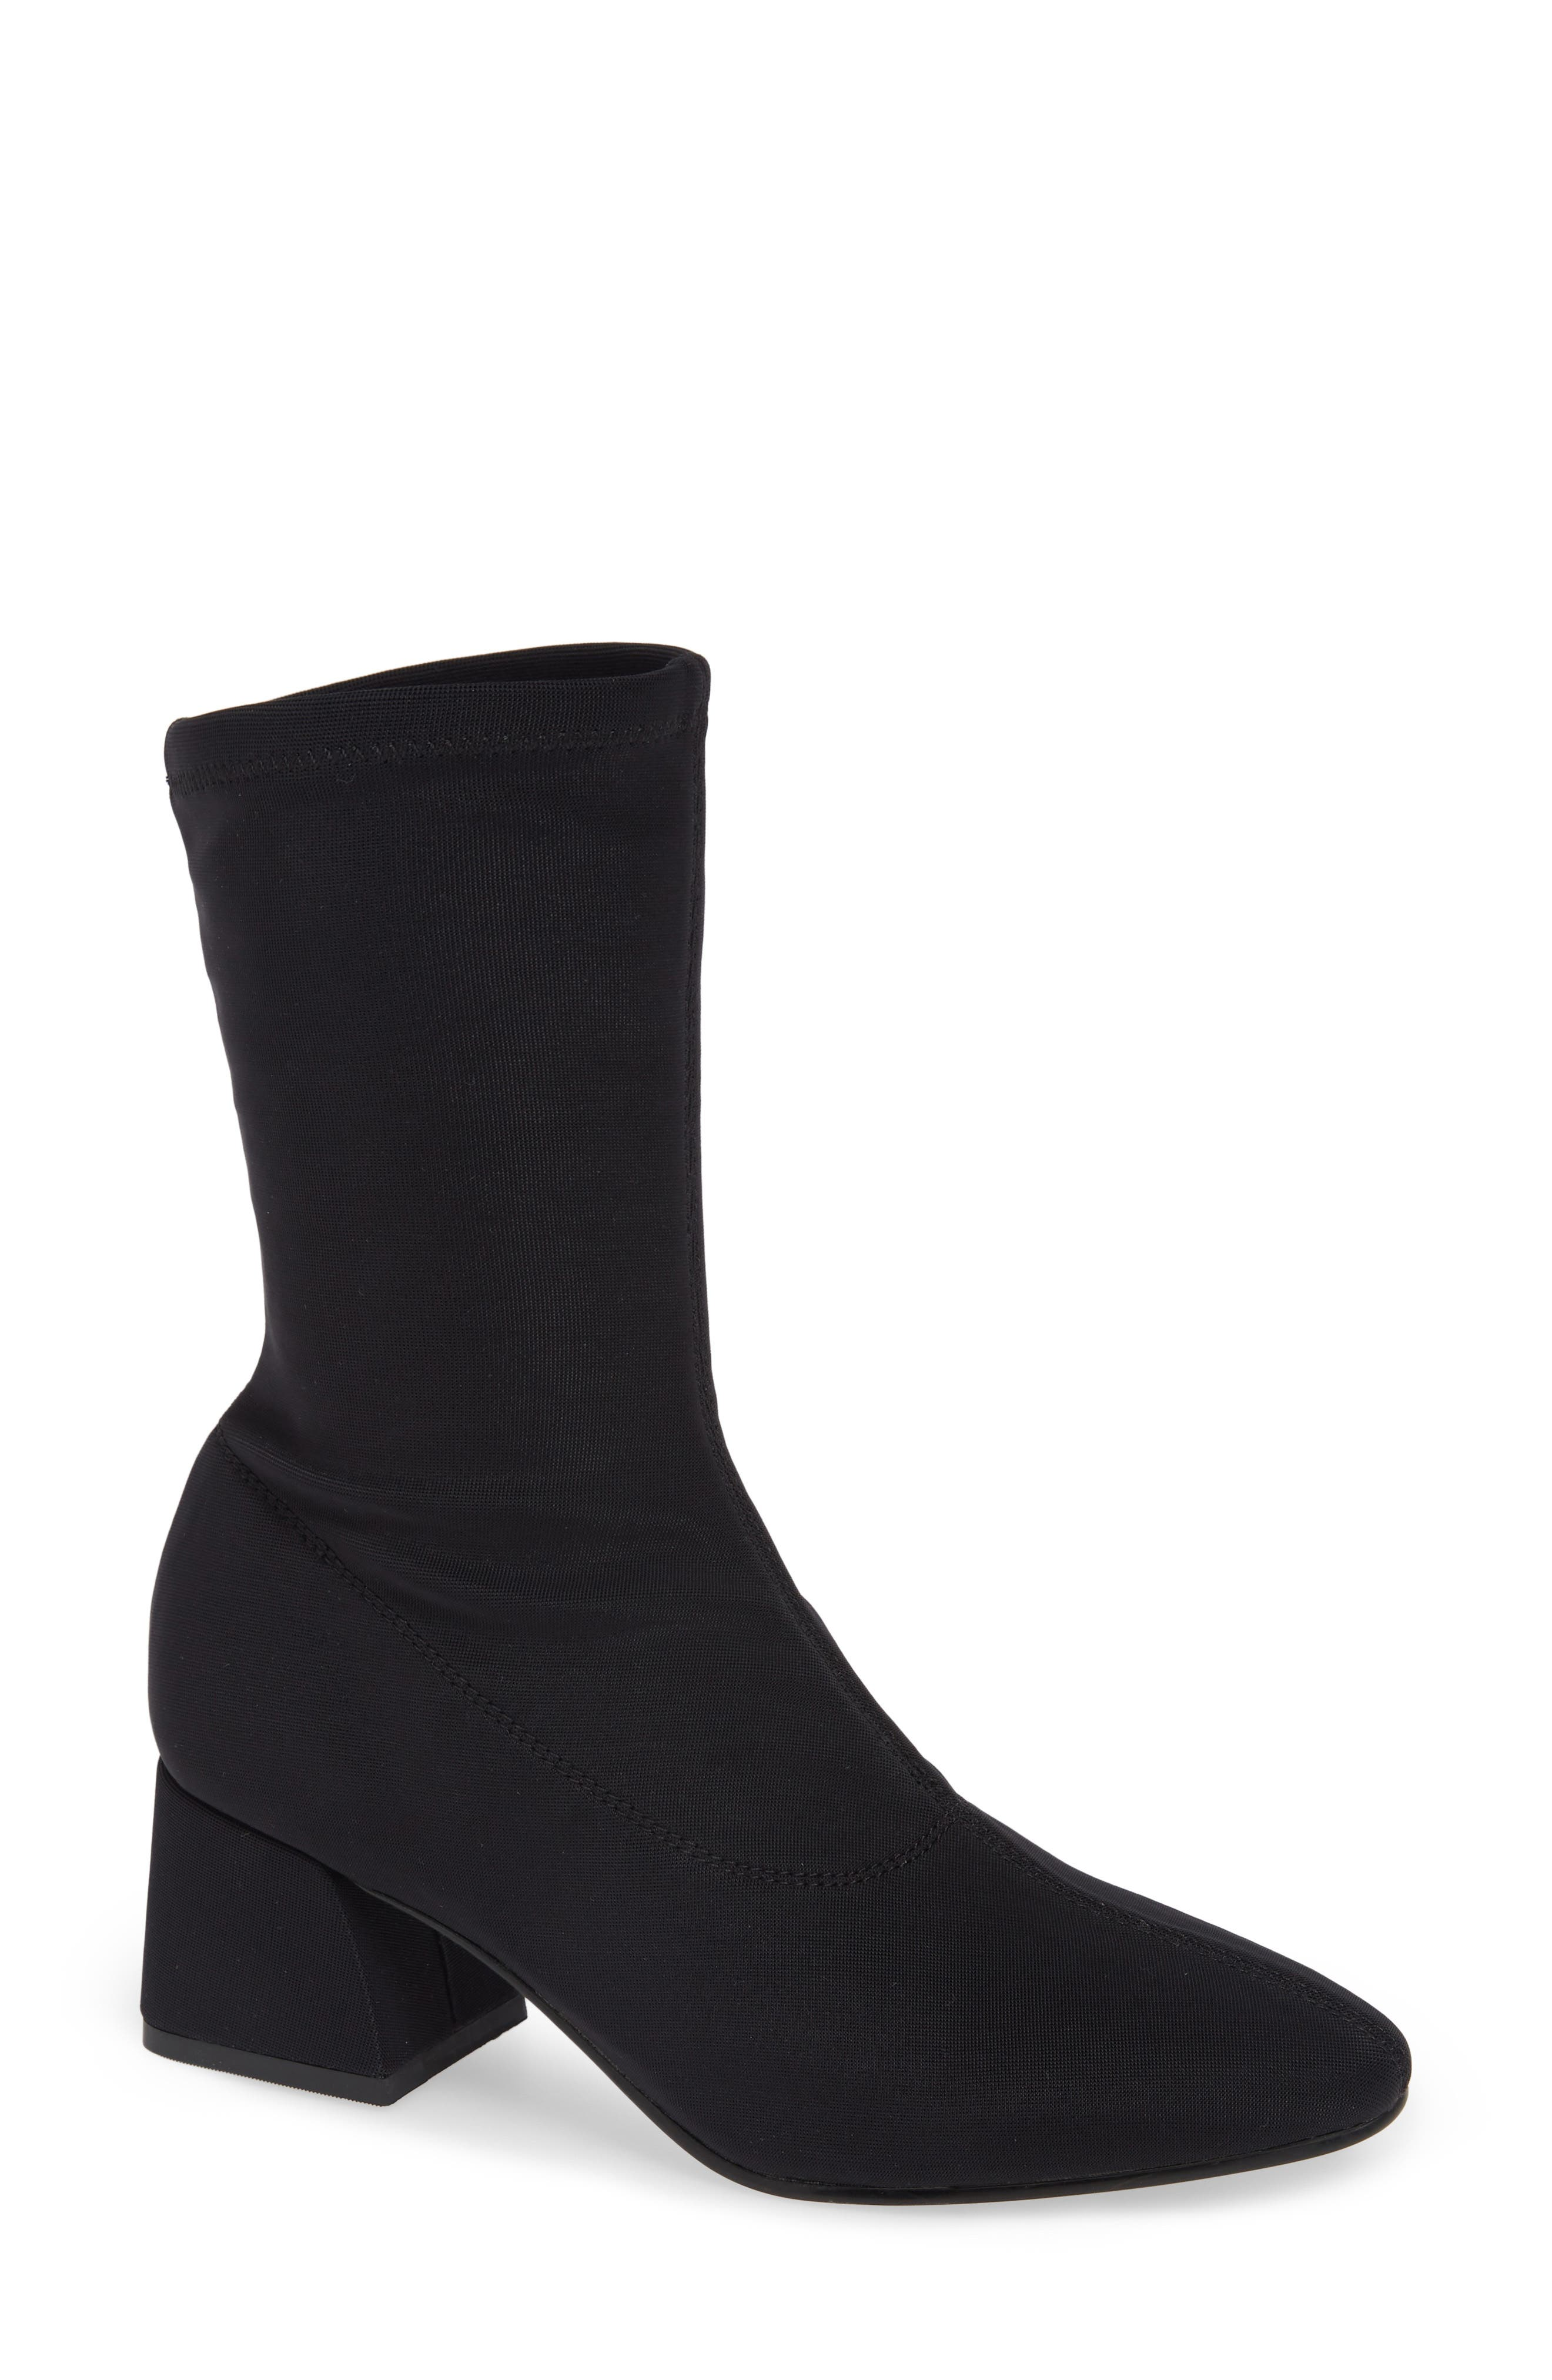 Shoemakers Alice Stretch Bootie in Black Fabric